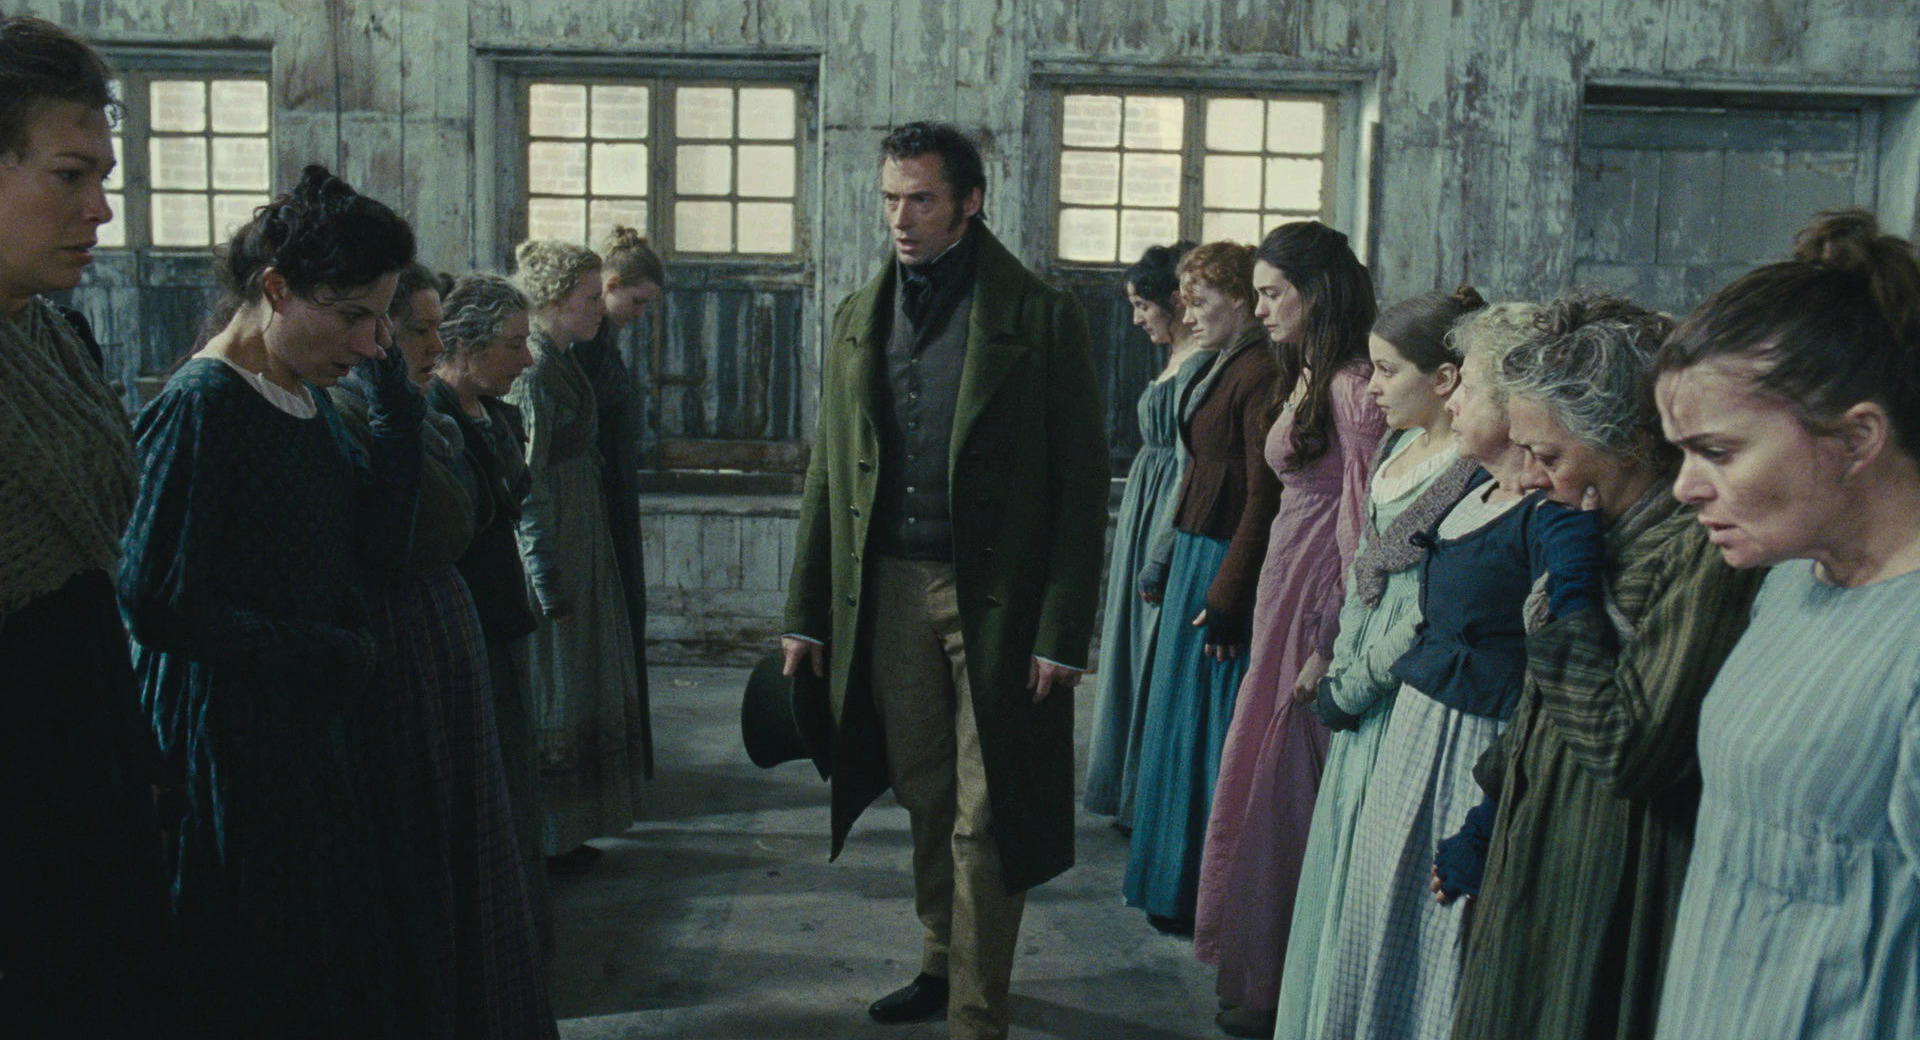 the characters of jean val jean javert and marius in les misrables by victor hugo Les misérables has been made into a french musical, then a broadway hit it was recently made into a feature film starring hugh jackman as jean valjean, russell crowe as javert, and anne hathaway.